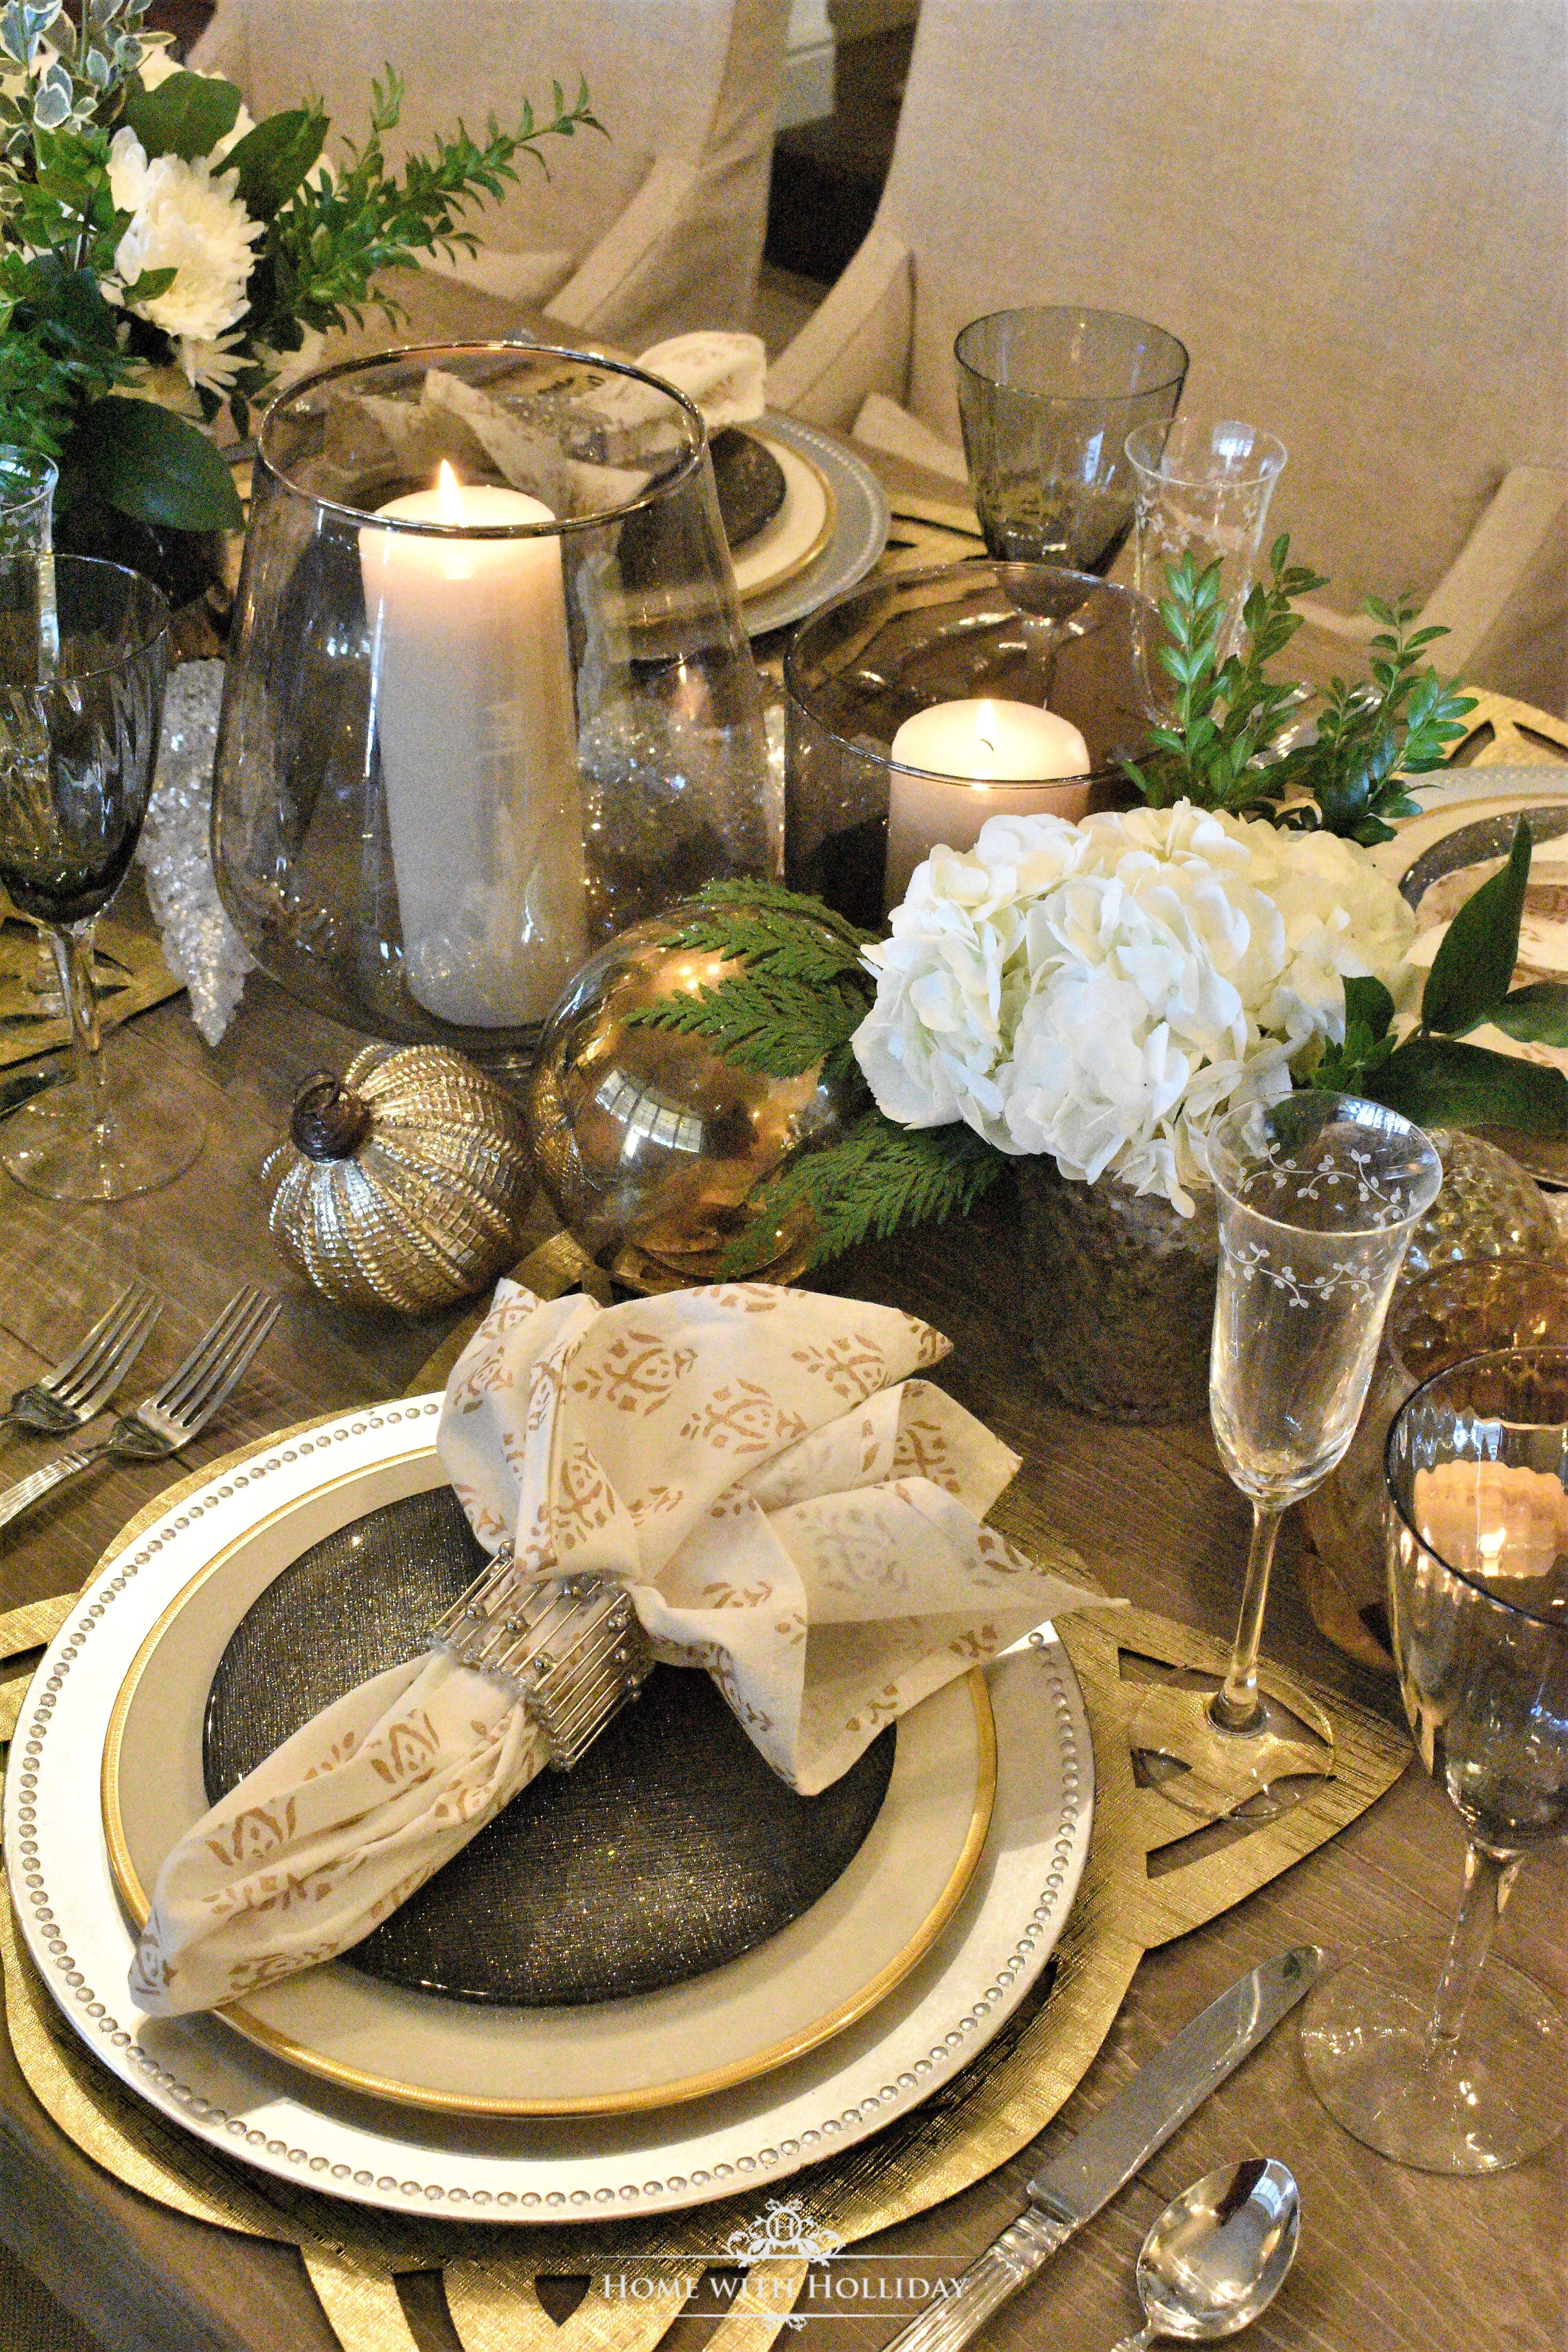 Gold And Silver Table Setting New Year S Eve Or Christmas Silver Table Settings New Years Eve Decorations Christmas Table Settings